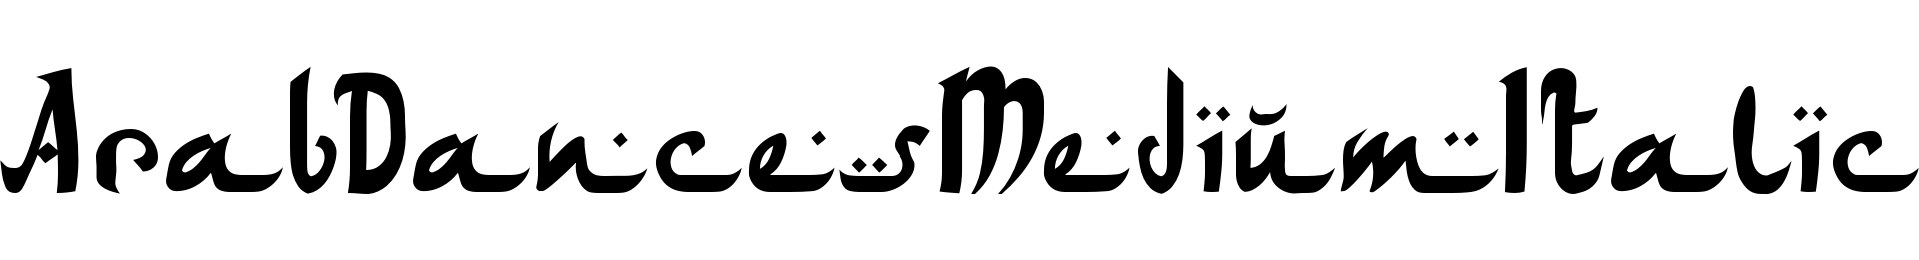 ArabDancesMediumItalic